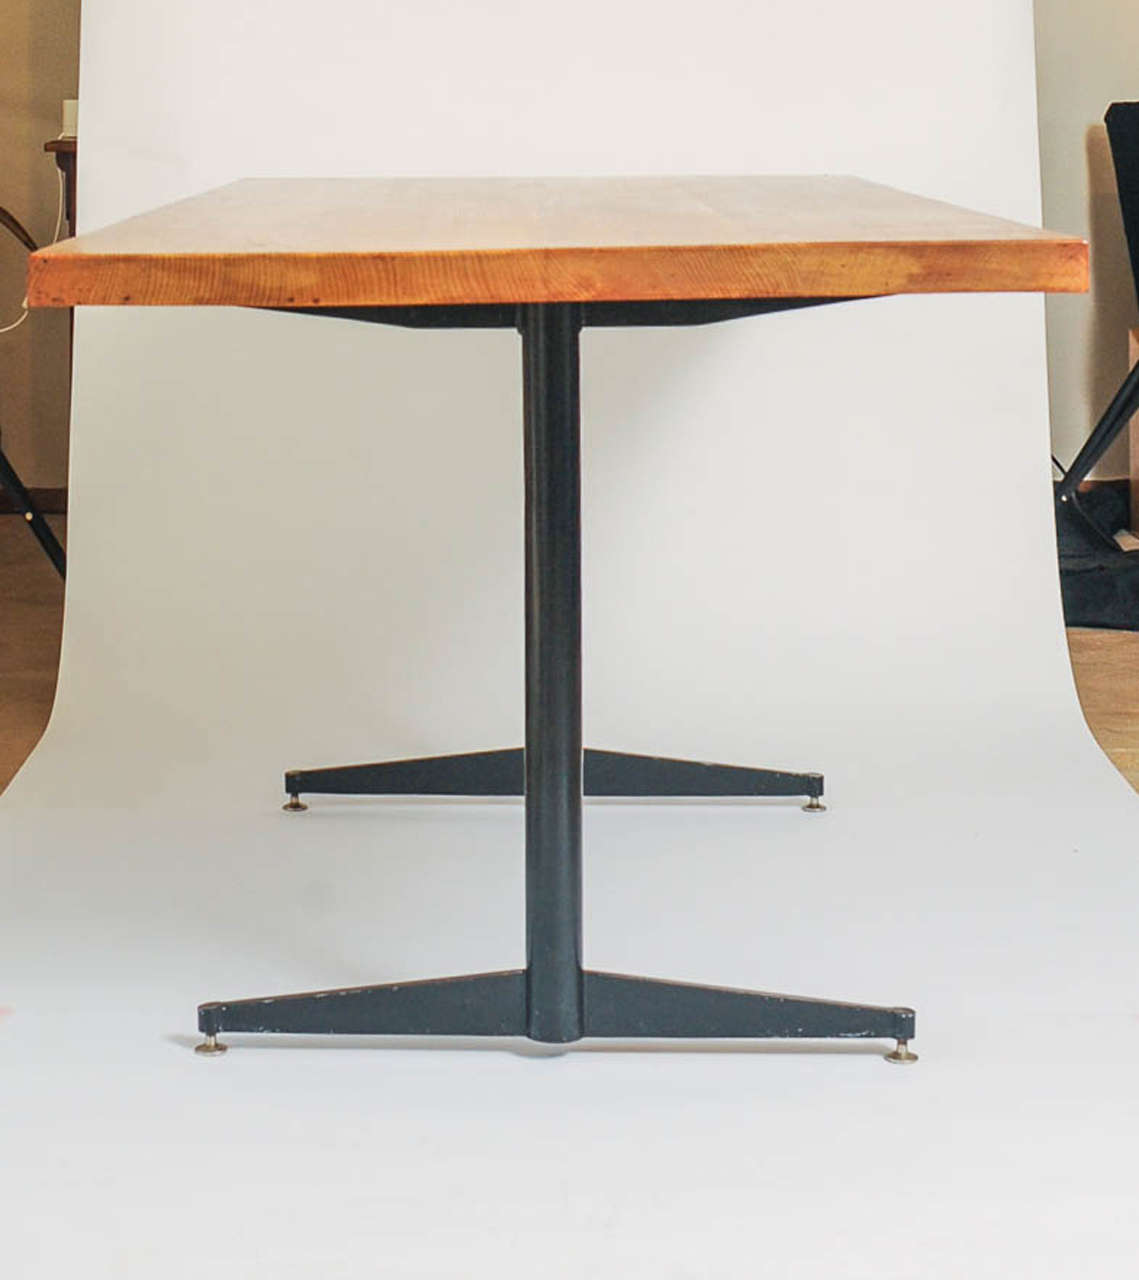 Eames Style Dining Table Made of Solid Oak and Black Steel  : DSC0913 from www.1stdibs.com size 1139 x 1280 jpeg 53kB